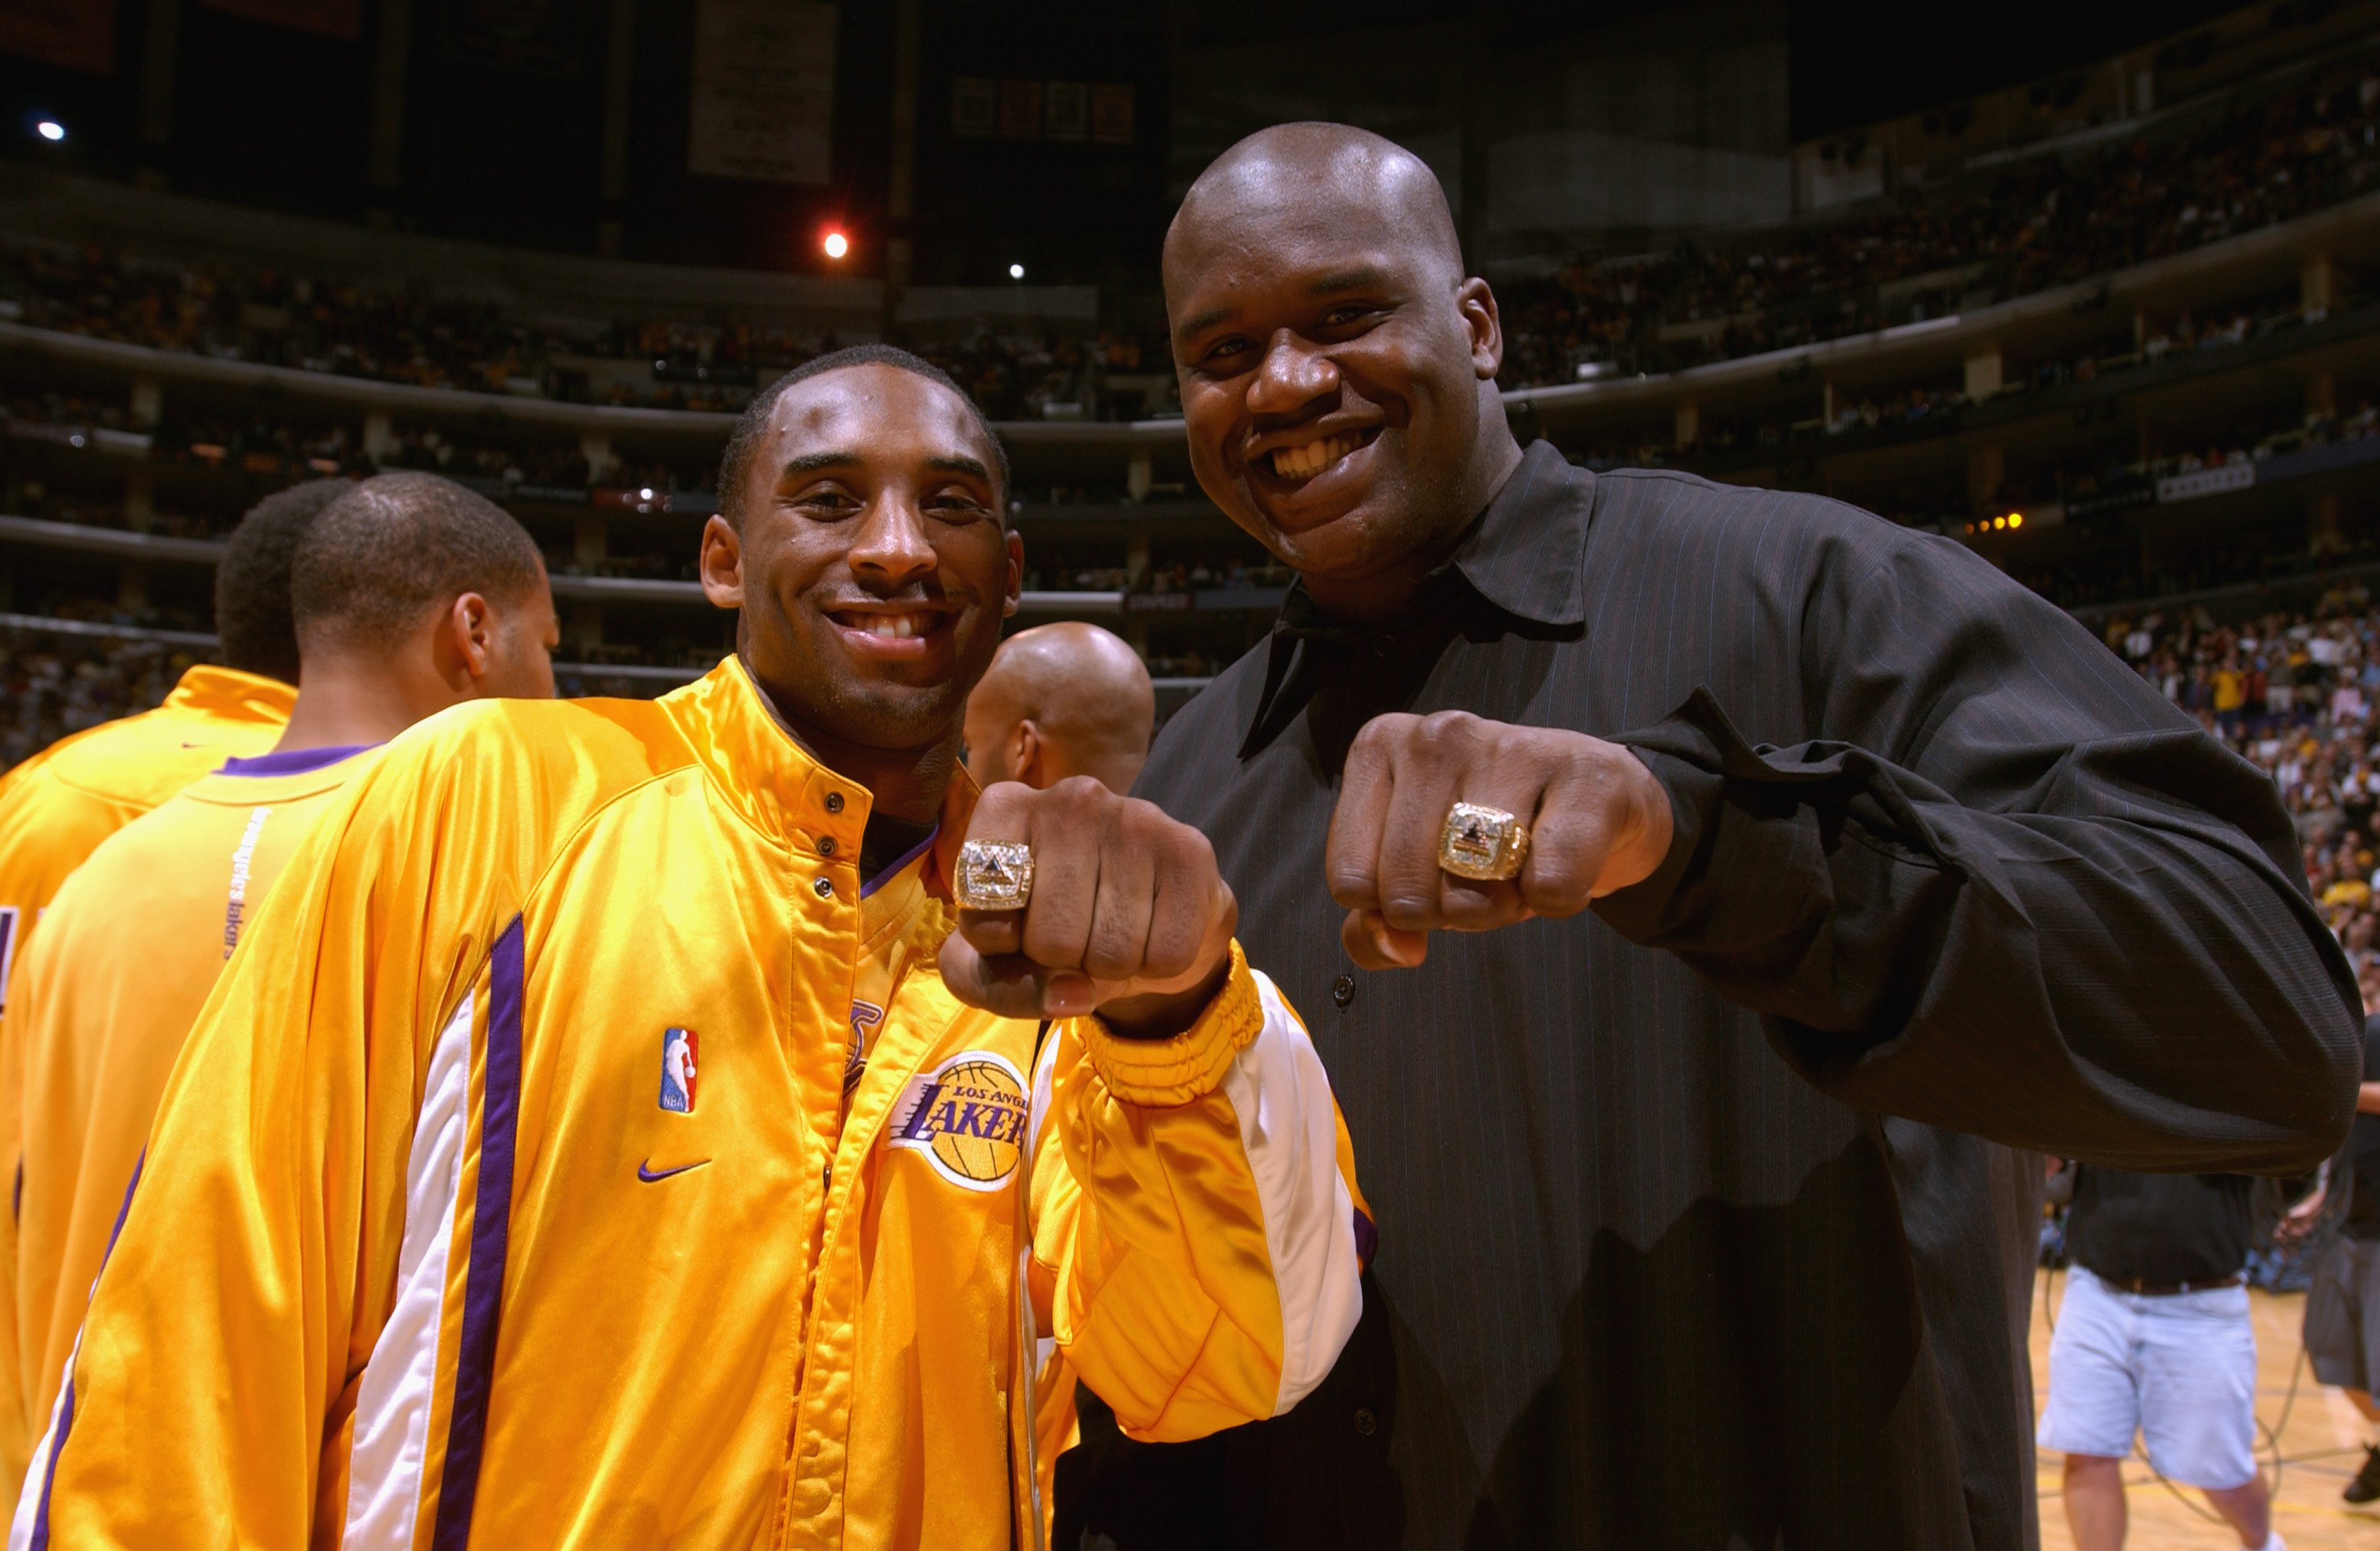 Kobe Bryant and Shaquille O'Neal showing their rings at Staples Center on October 29, 2002 in Los Angeles, California. | Source: Getty Images